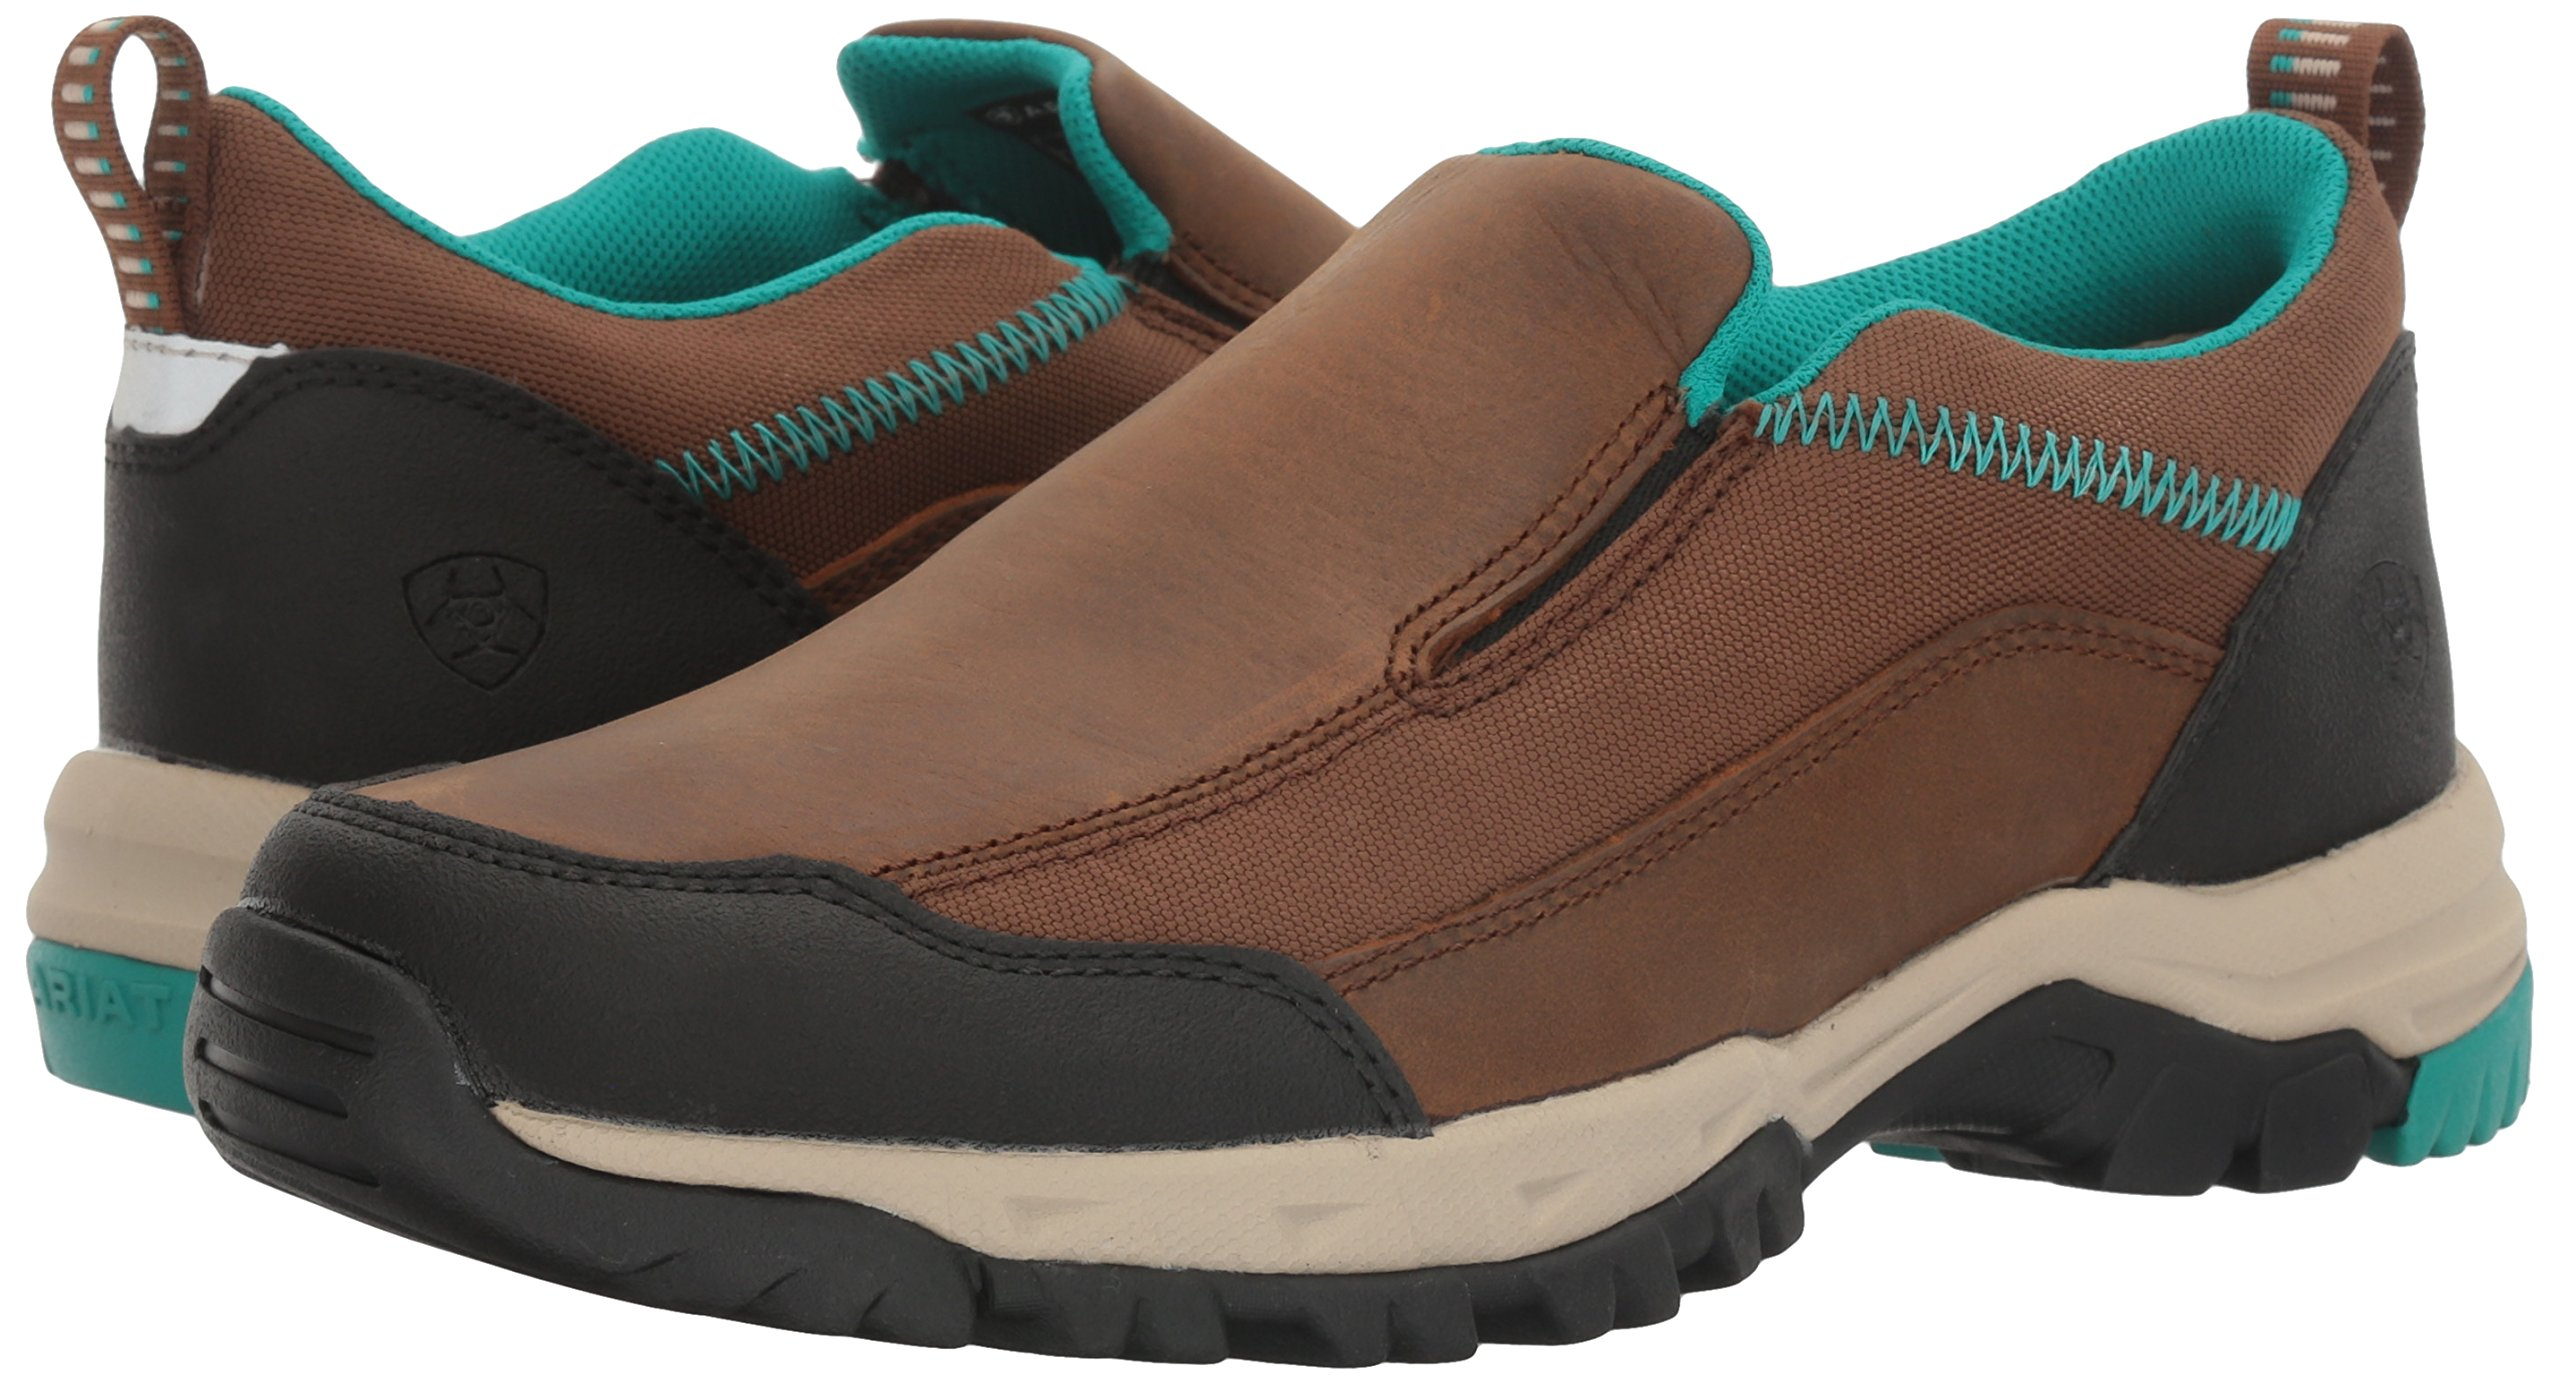 Ariat Women's Skyline Slip-on Hiking Shoe, Taupe, 8 B US by Ariat (Image #6)